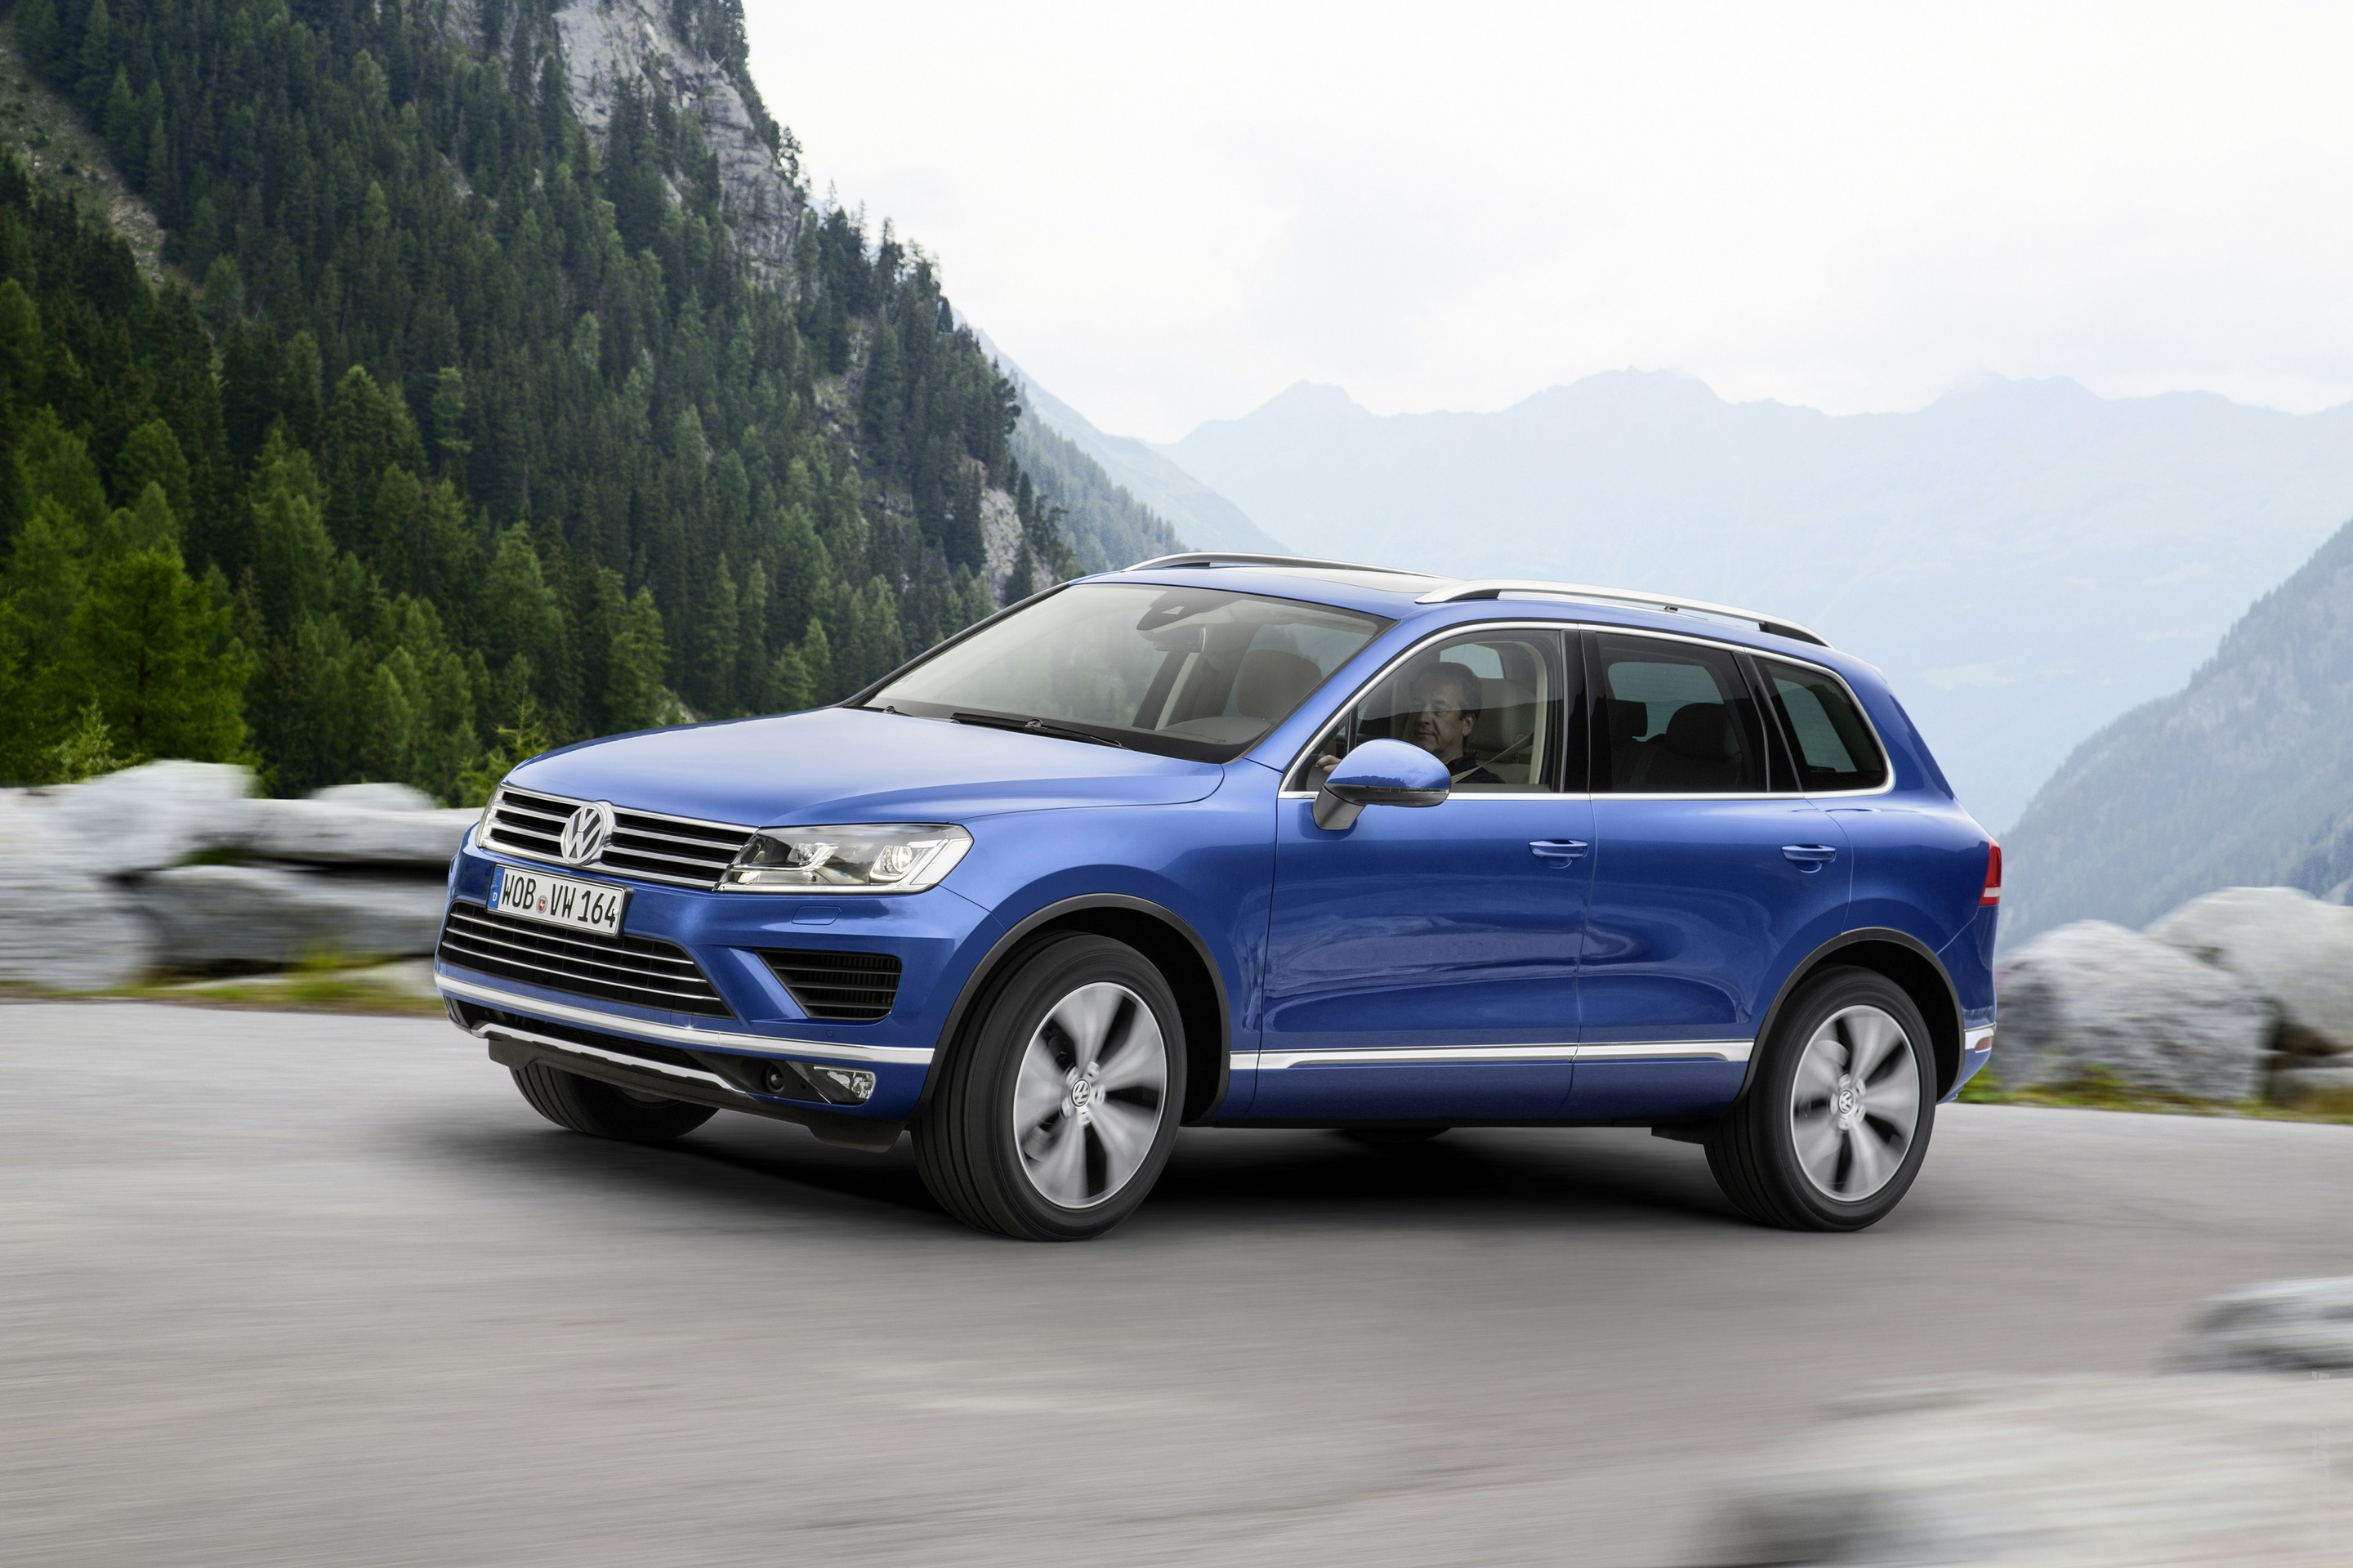 2019 Volkswagen Touareg V6 TDI photo - 4